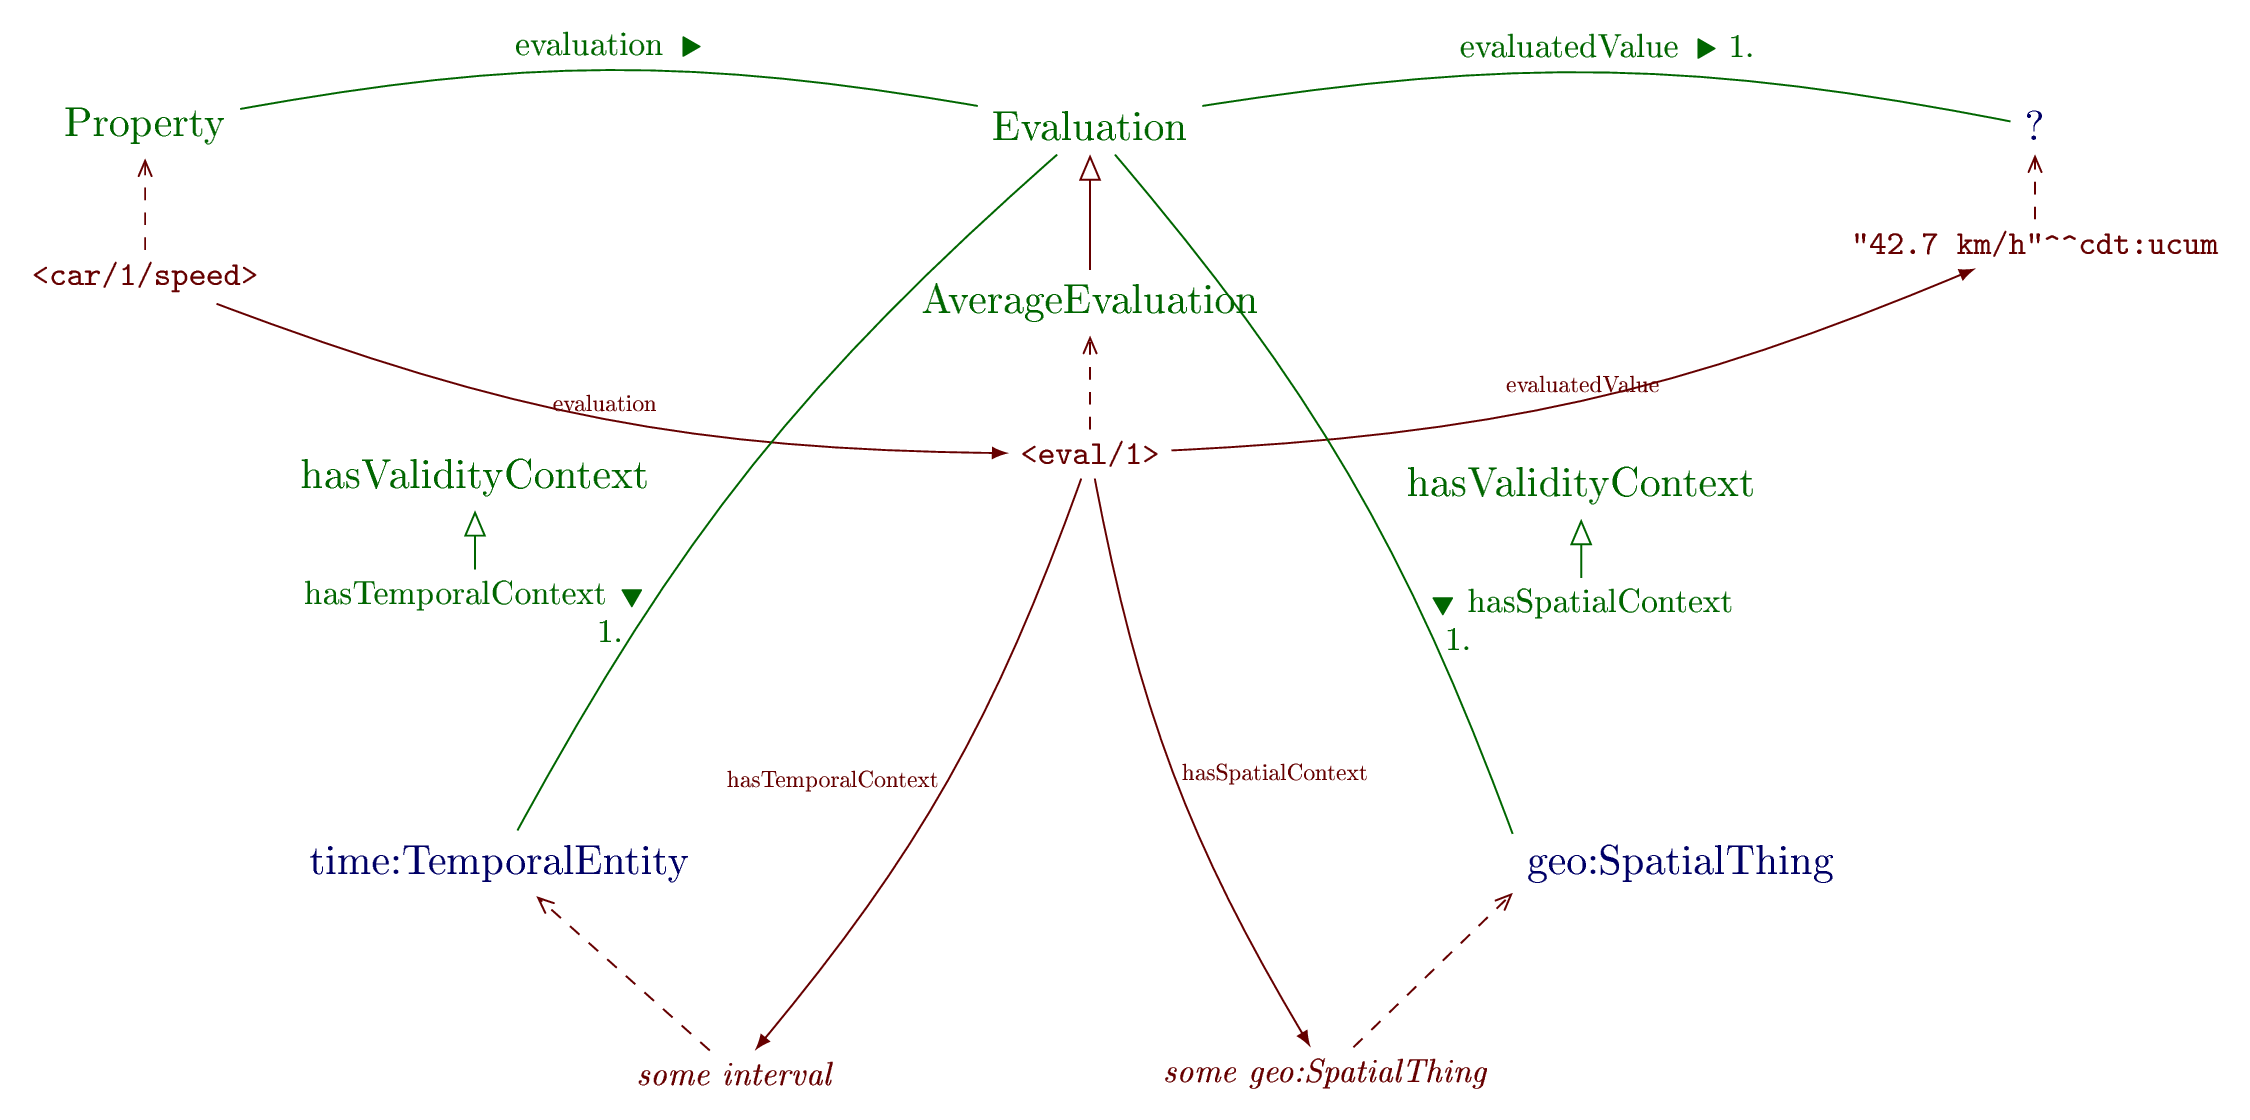 Overview of the Evaluation ontology